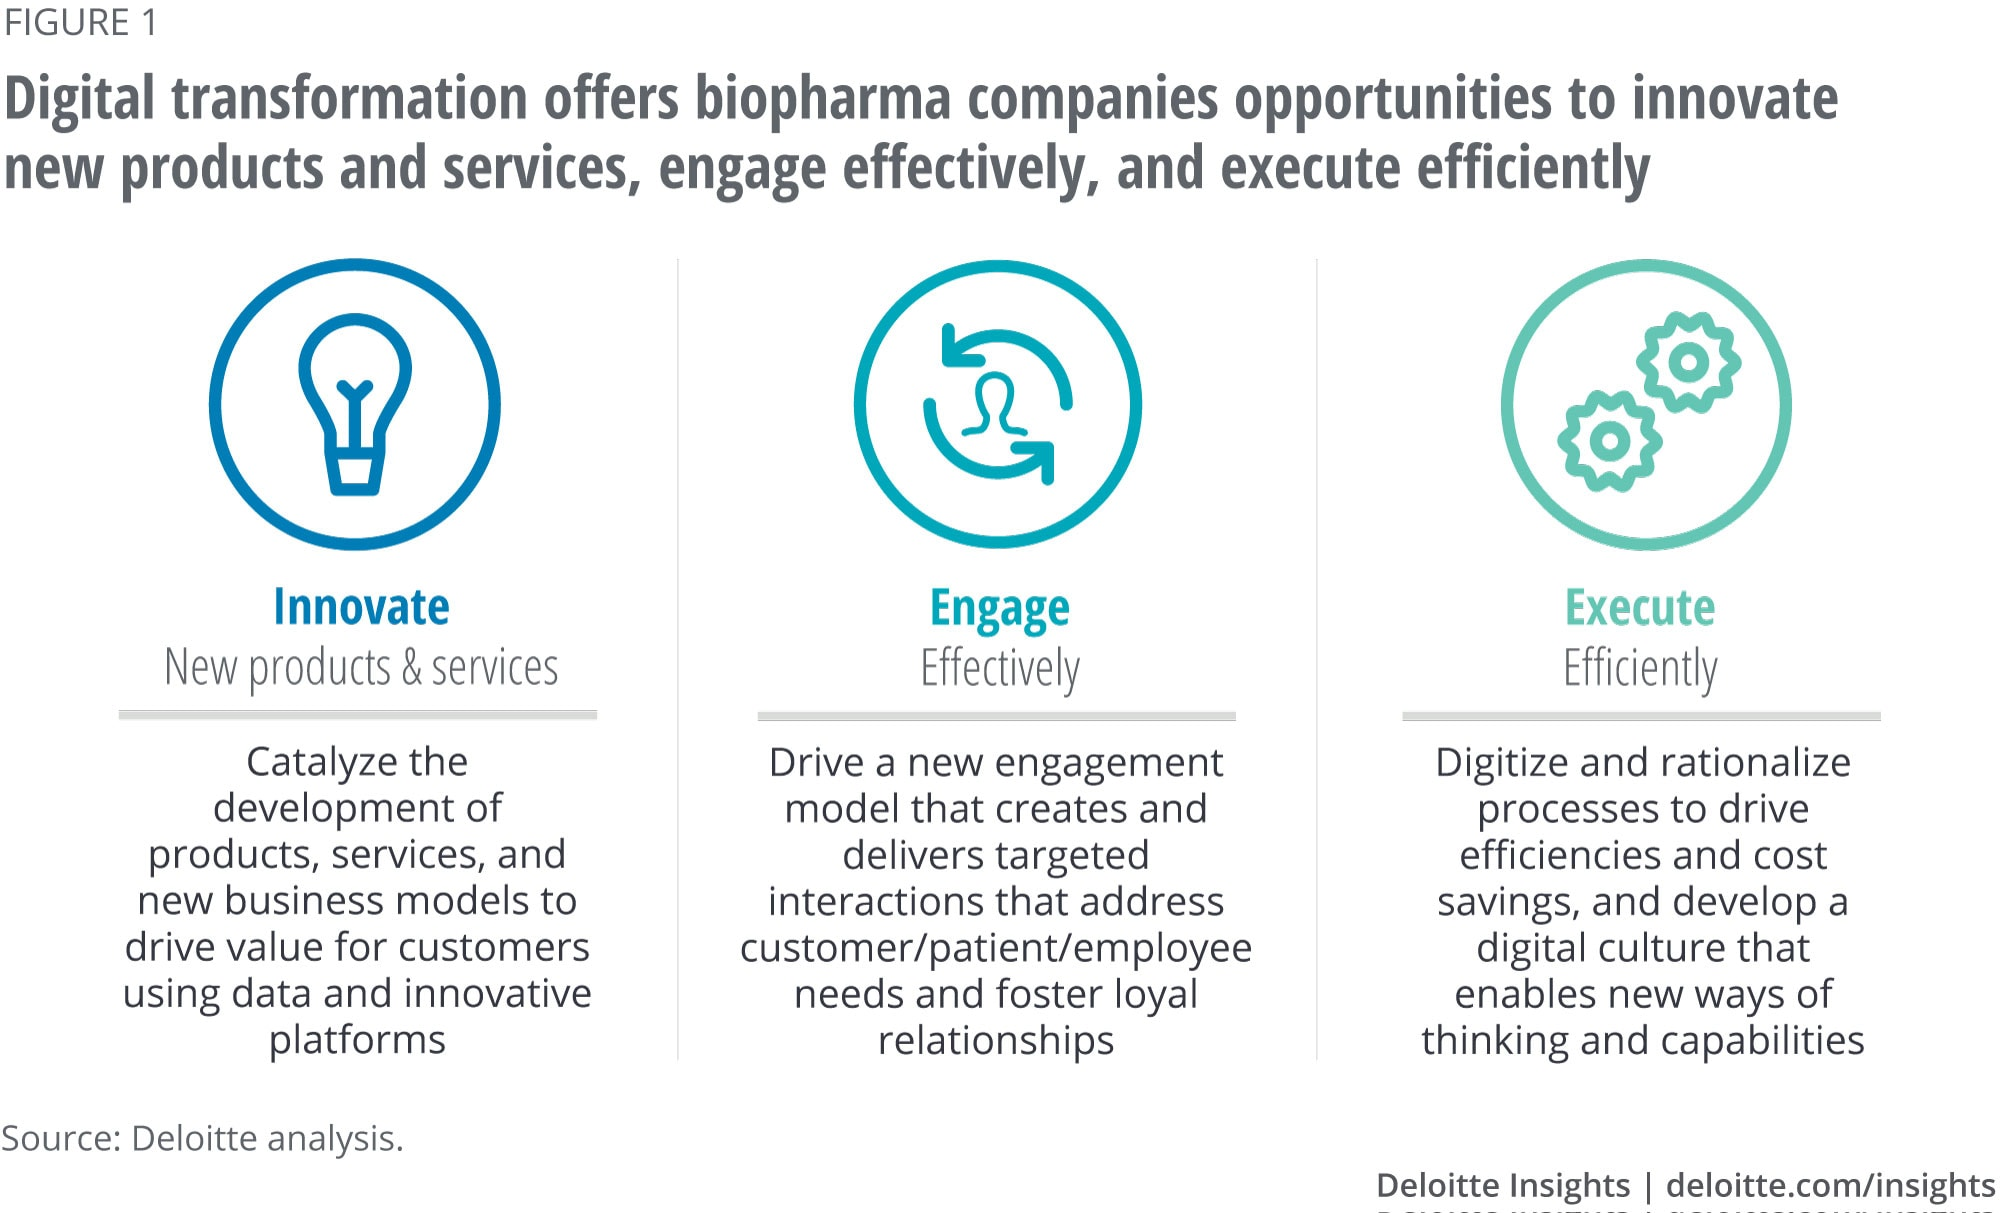 Digital transformation offers biopharma companies opportunities to innovate new products and services, engage effectively, and execute efficiently